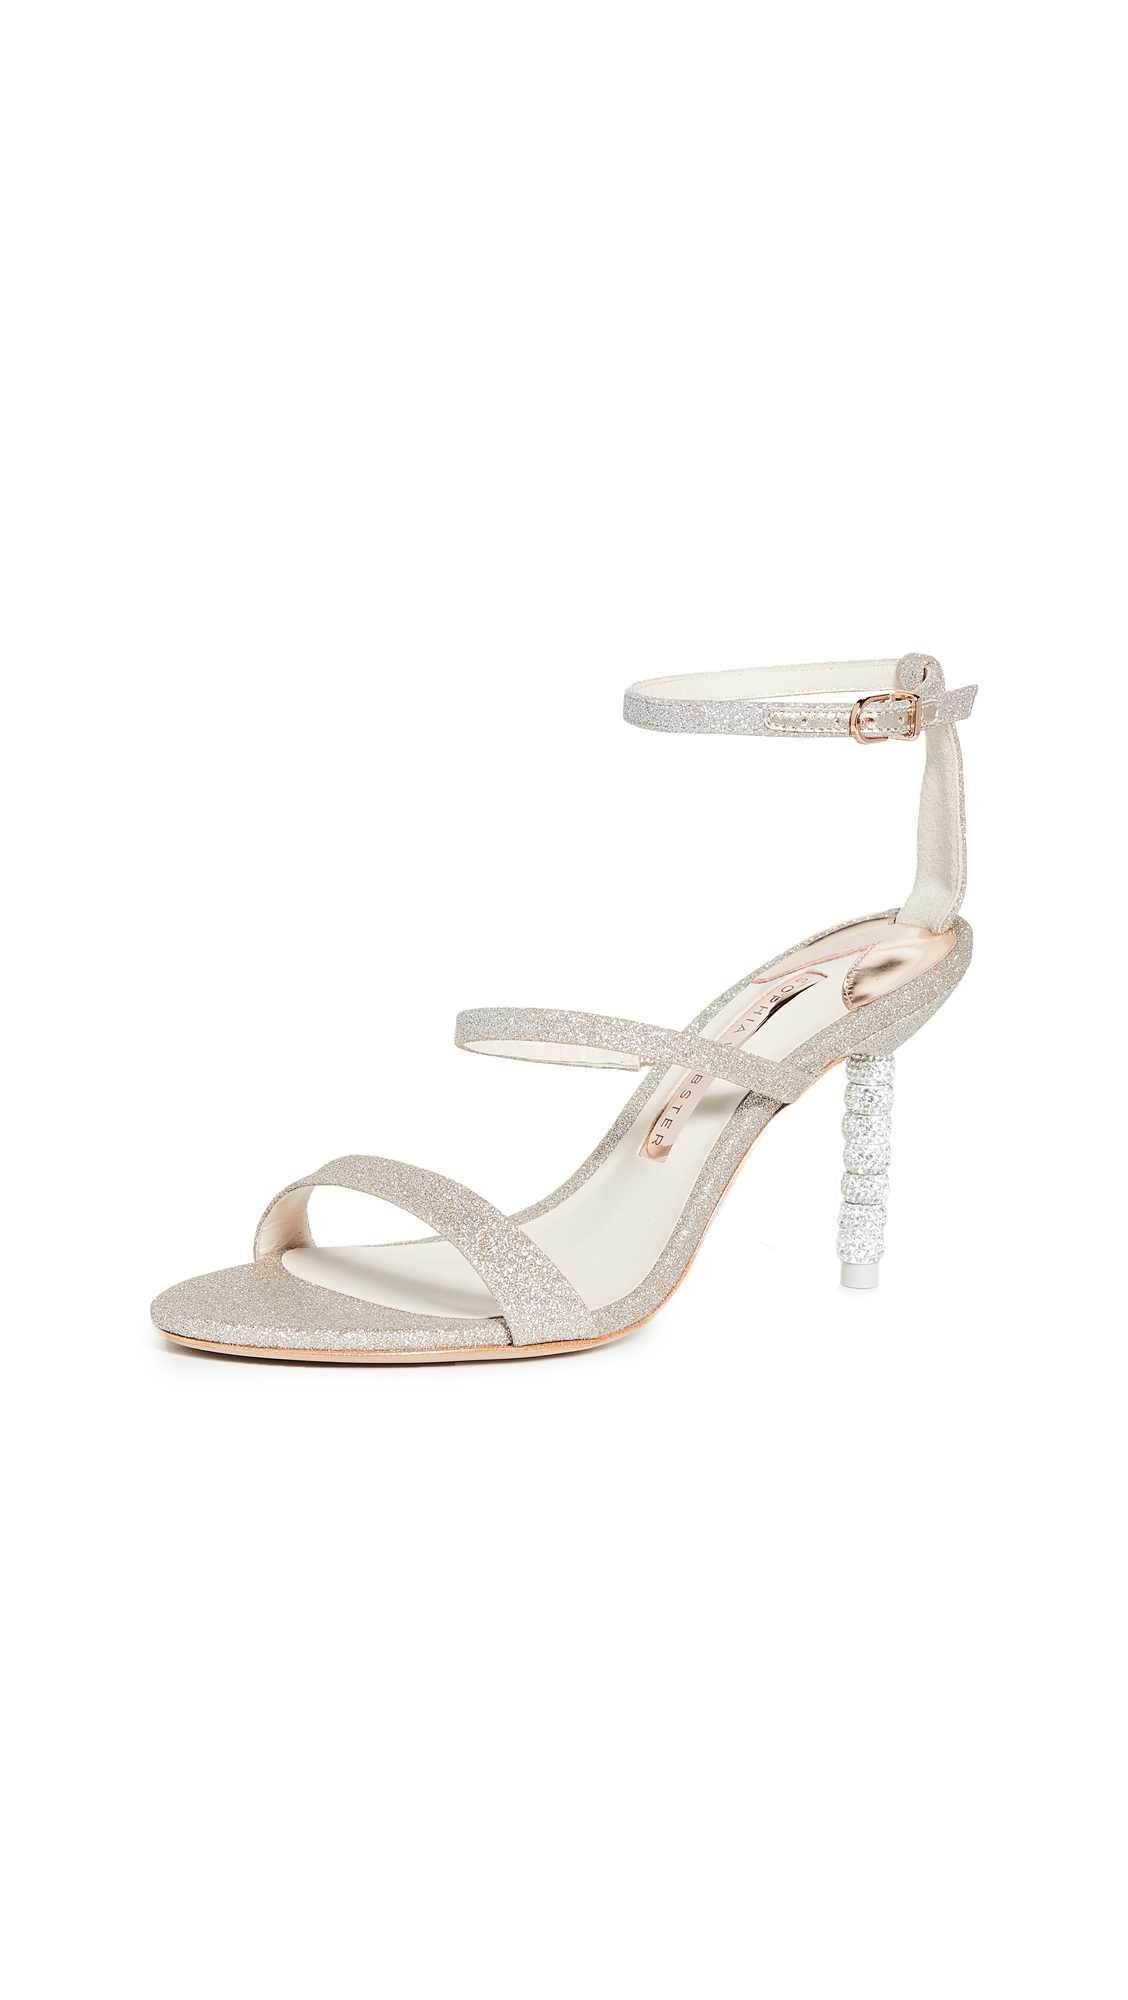 Sophia Webster 85mm Rosalind Crystal Sandals - 40% Off Sale